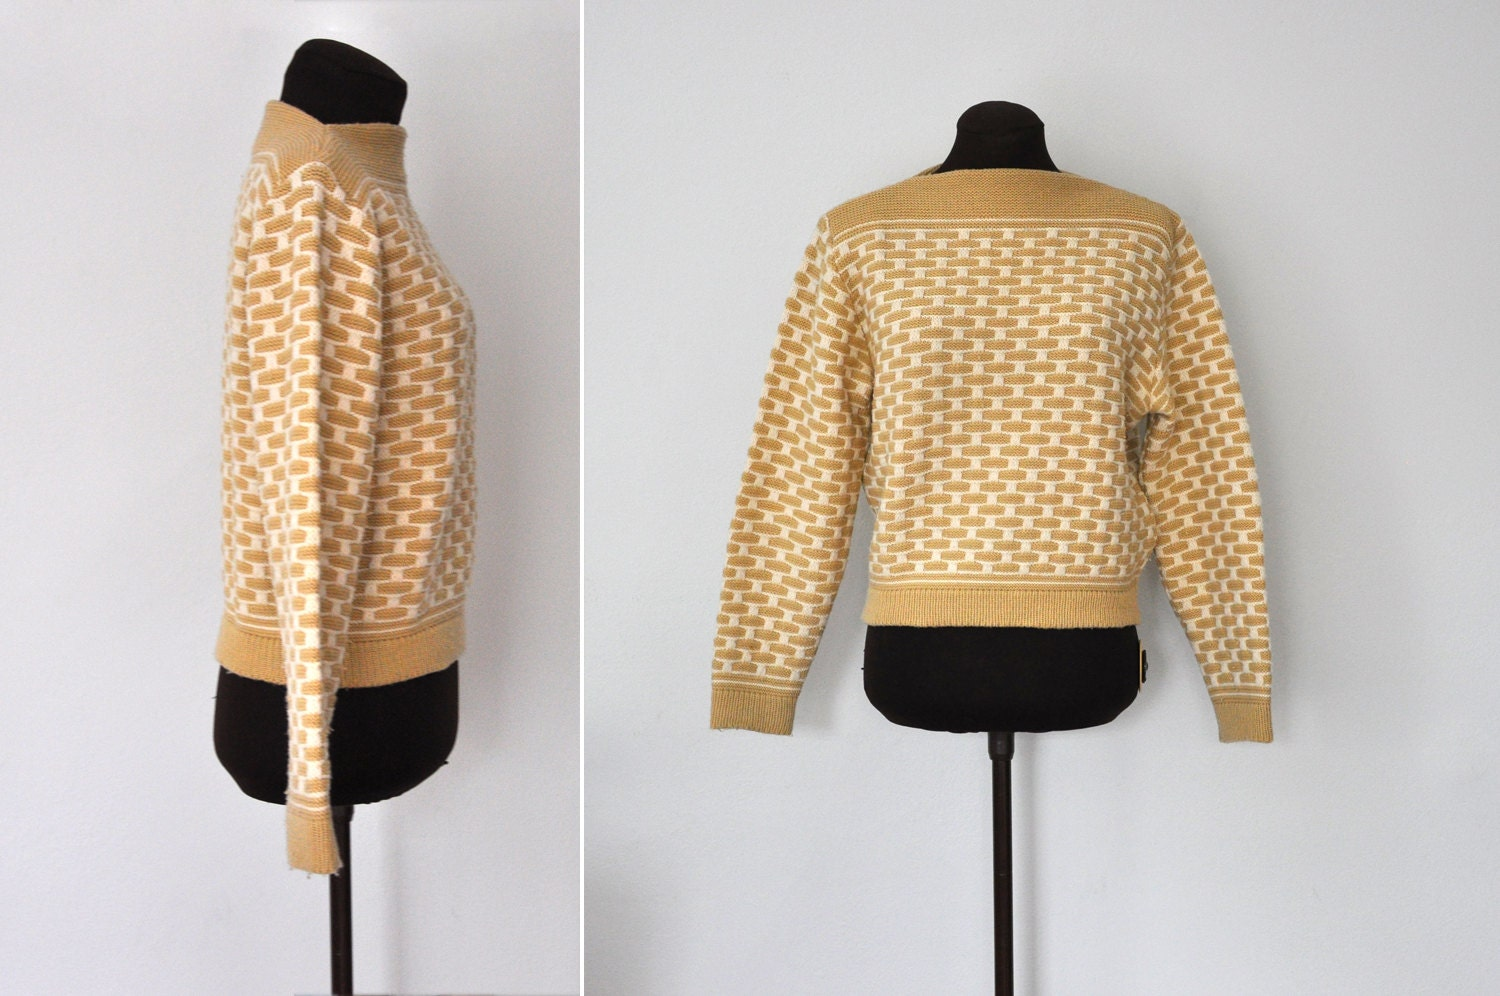 60s patterned wool s weater by koret of california size xs s koret